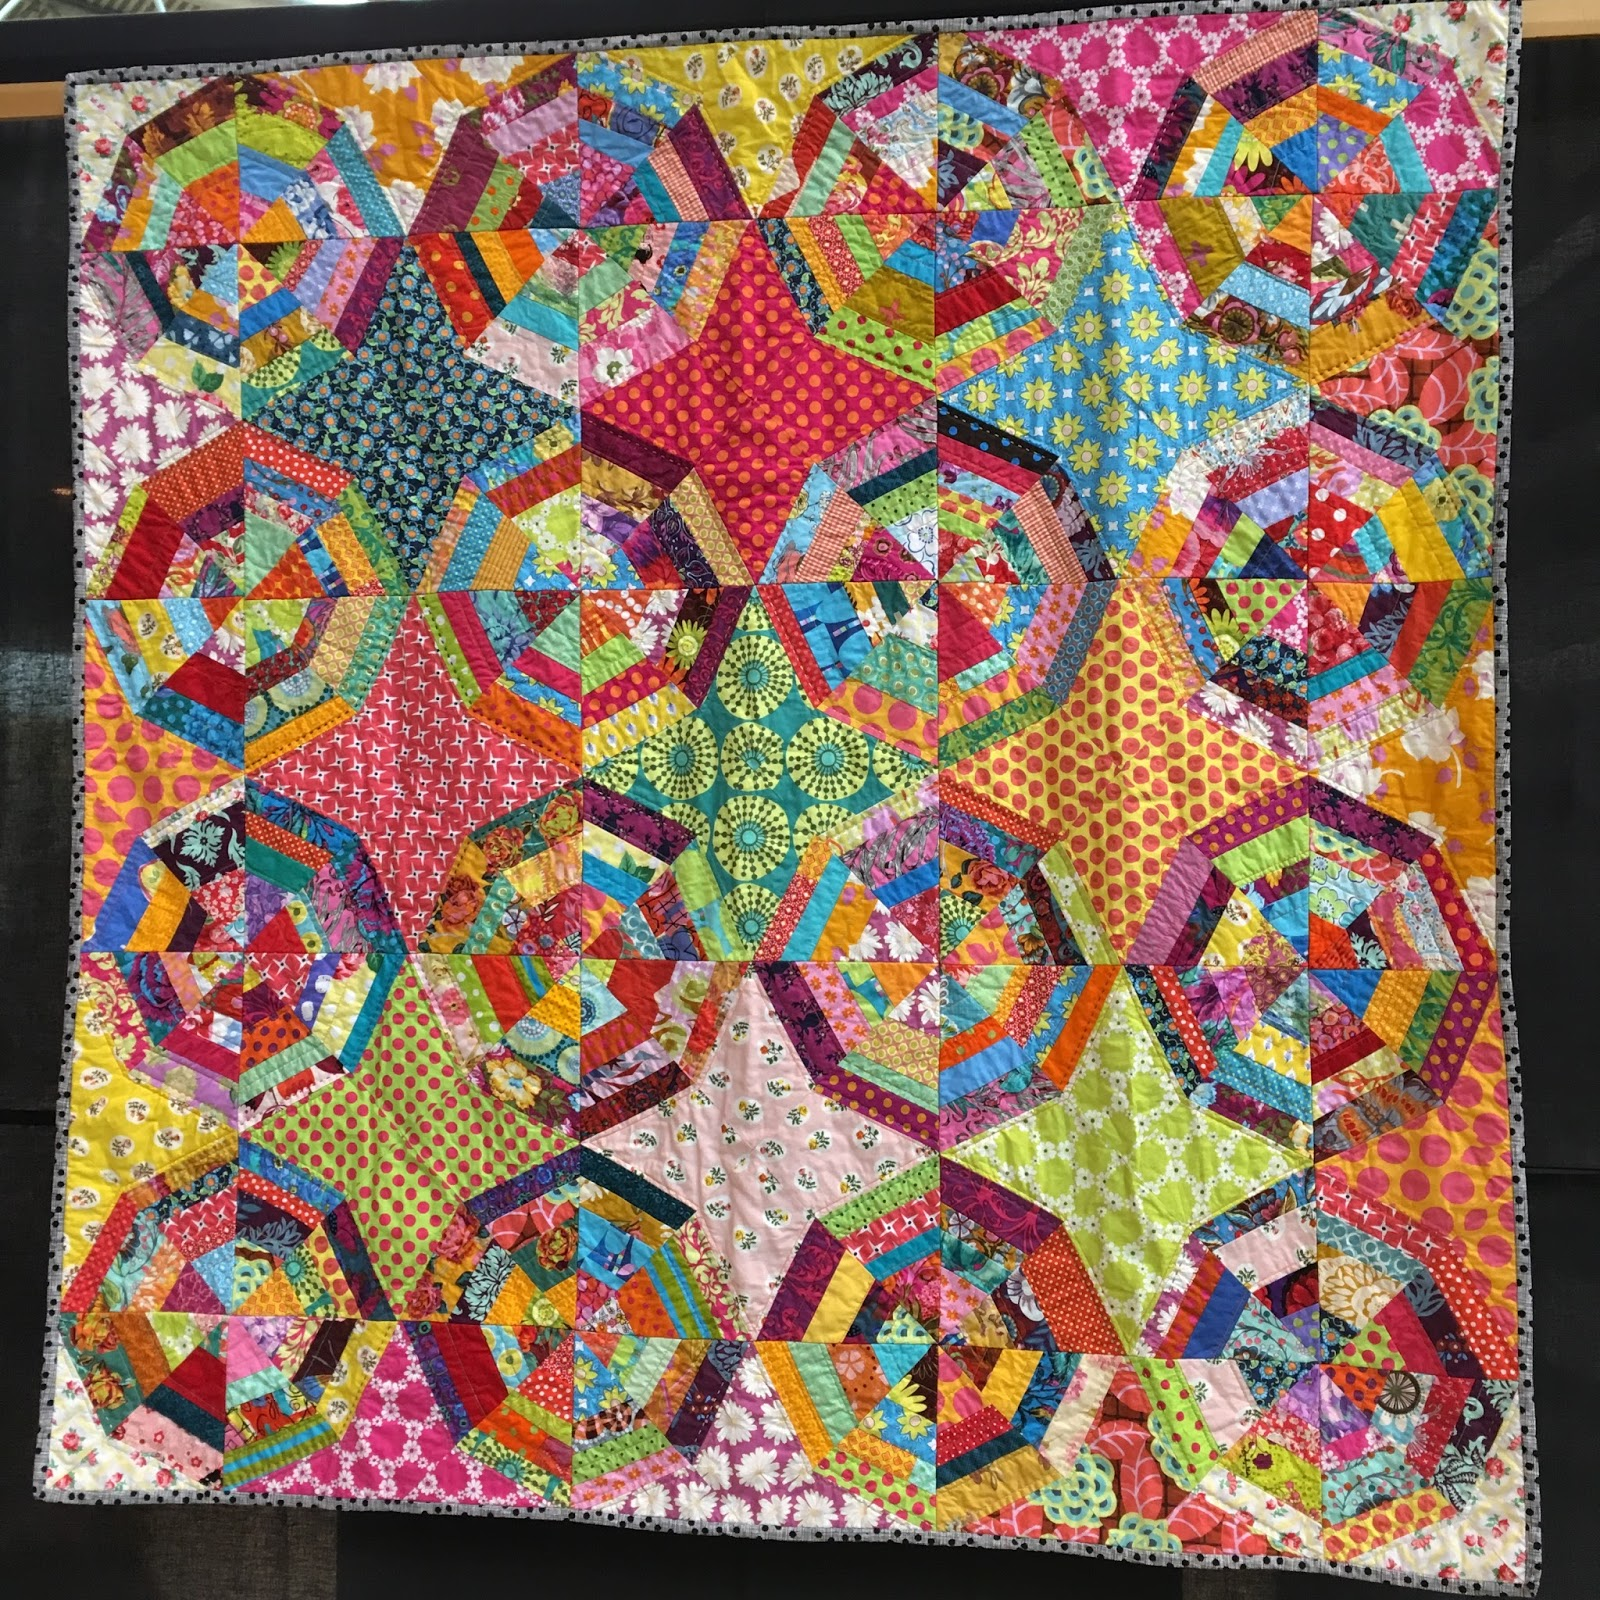 Festival of quilts 2016 charm about you for Festival of quilts birmingham 2016